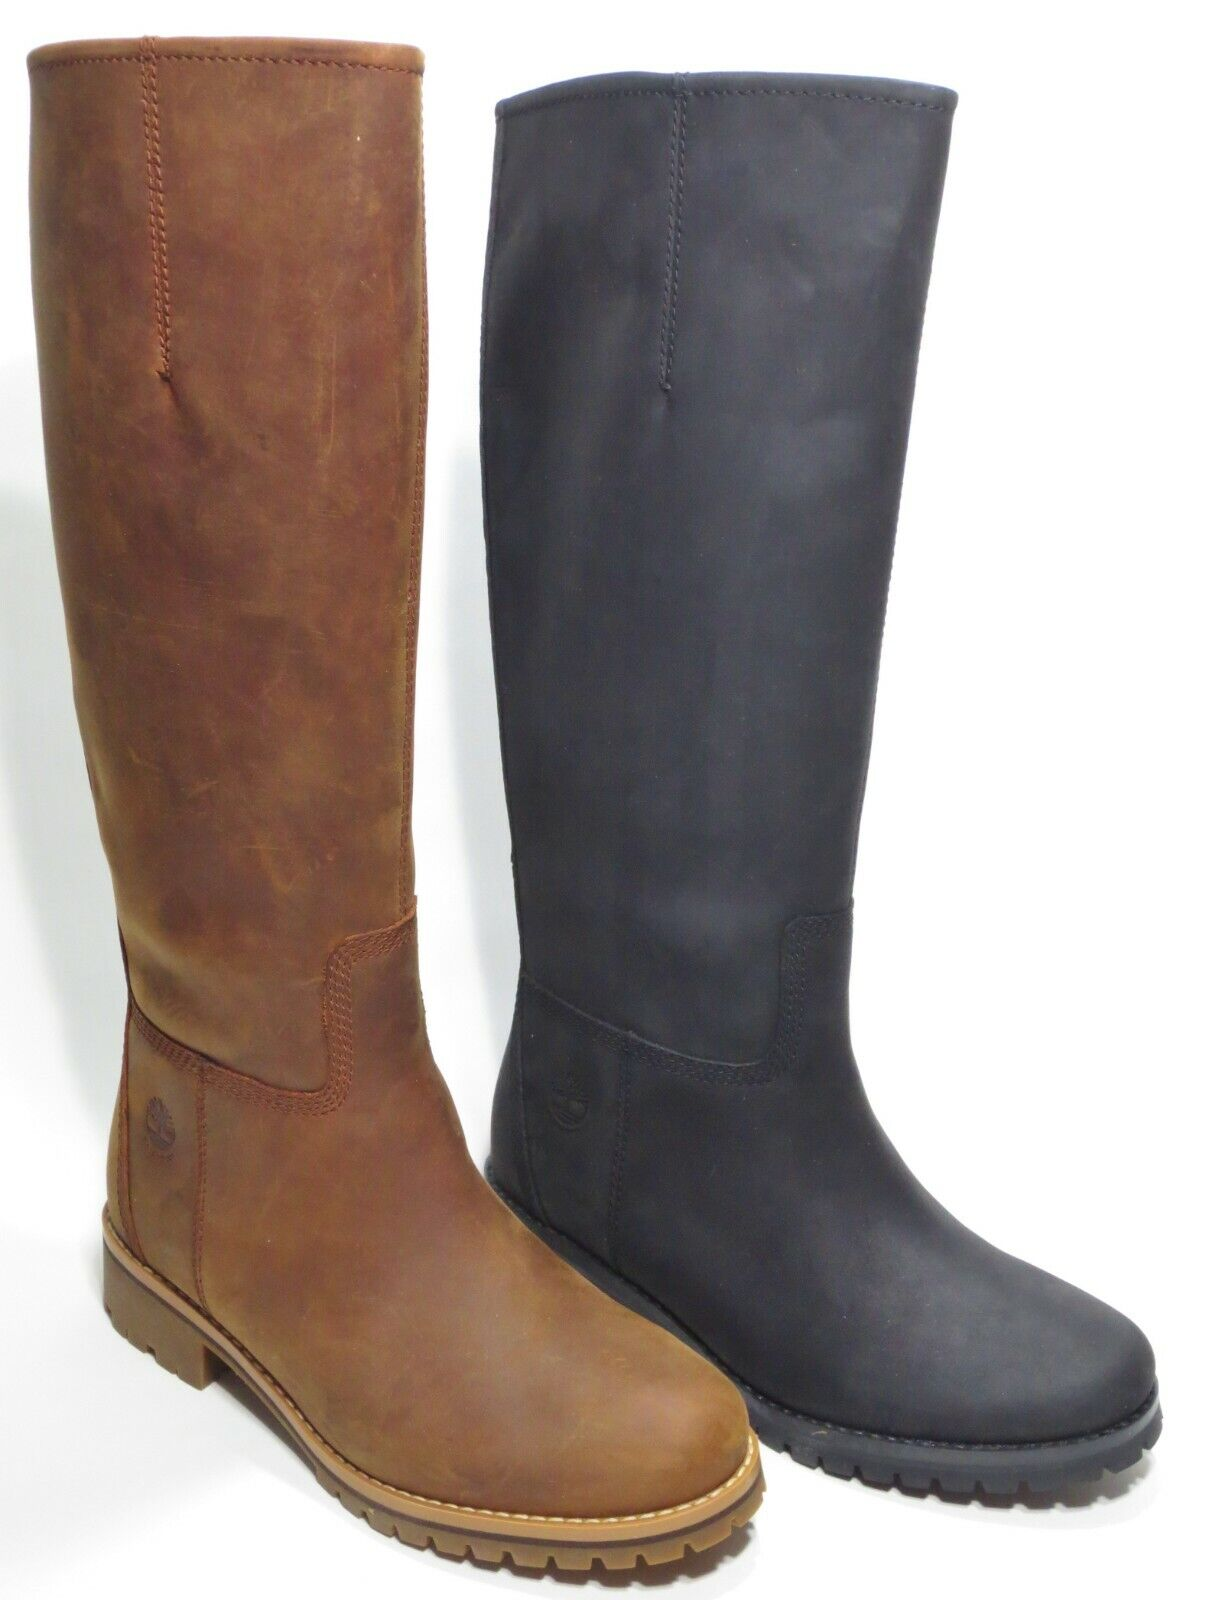 Timberland Womans Main Hill Premium Leather Tall Boots Black Brown A1RTG A1RT5